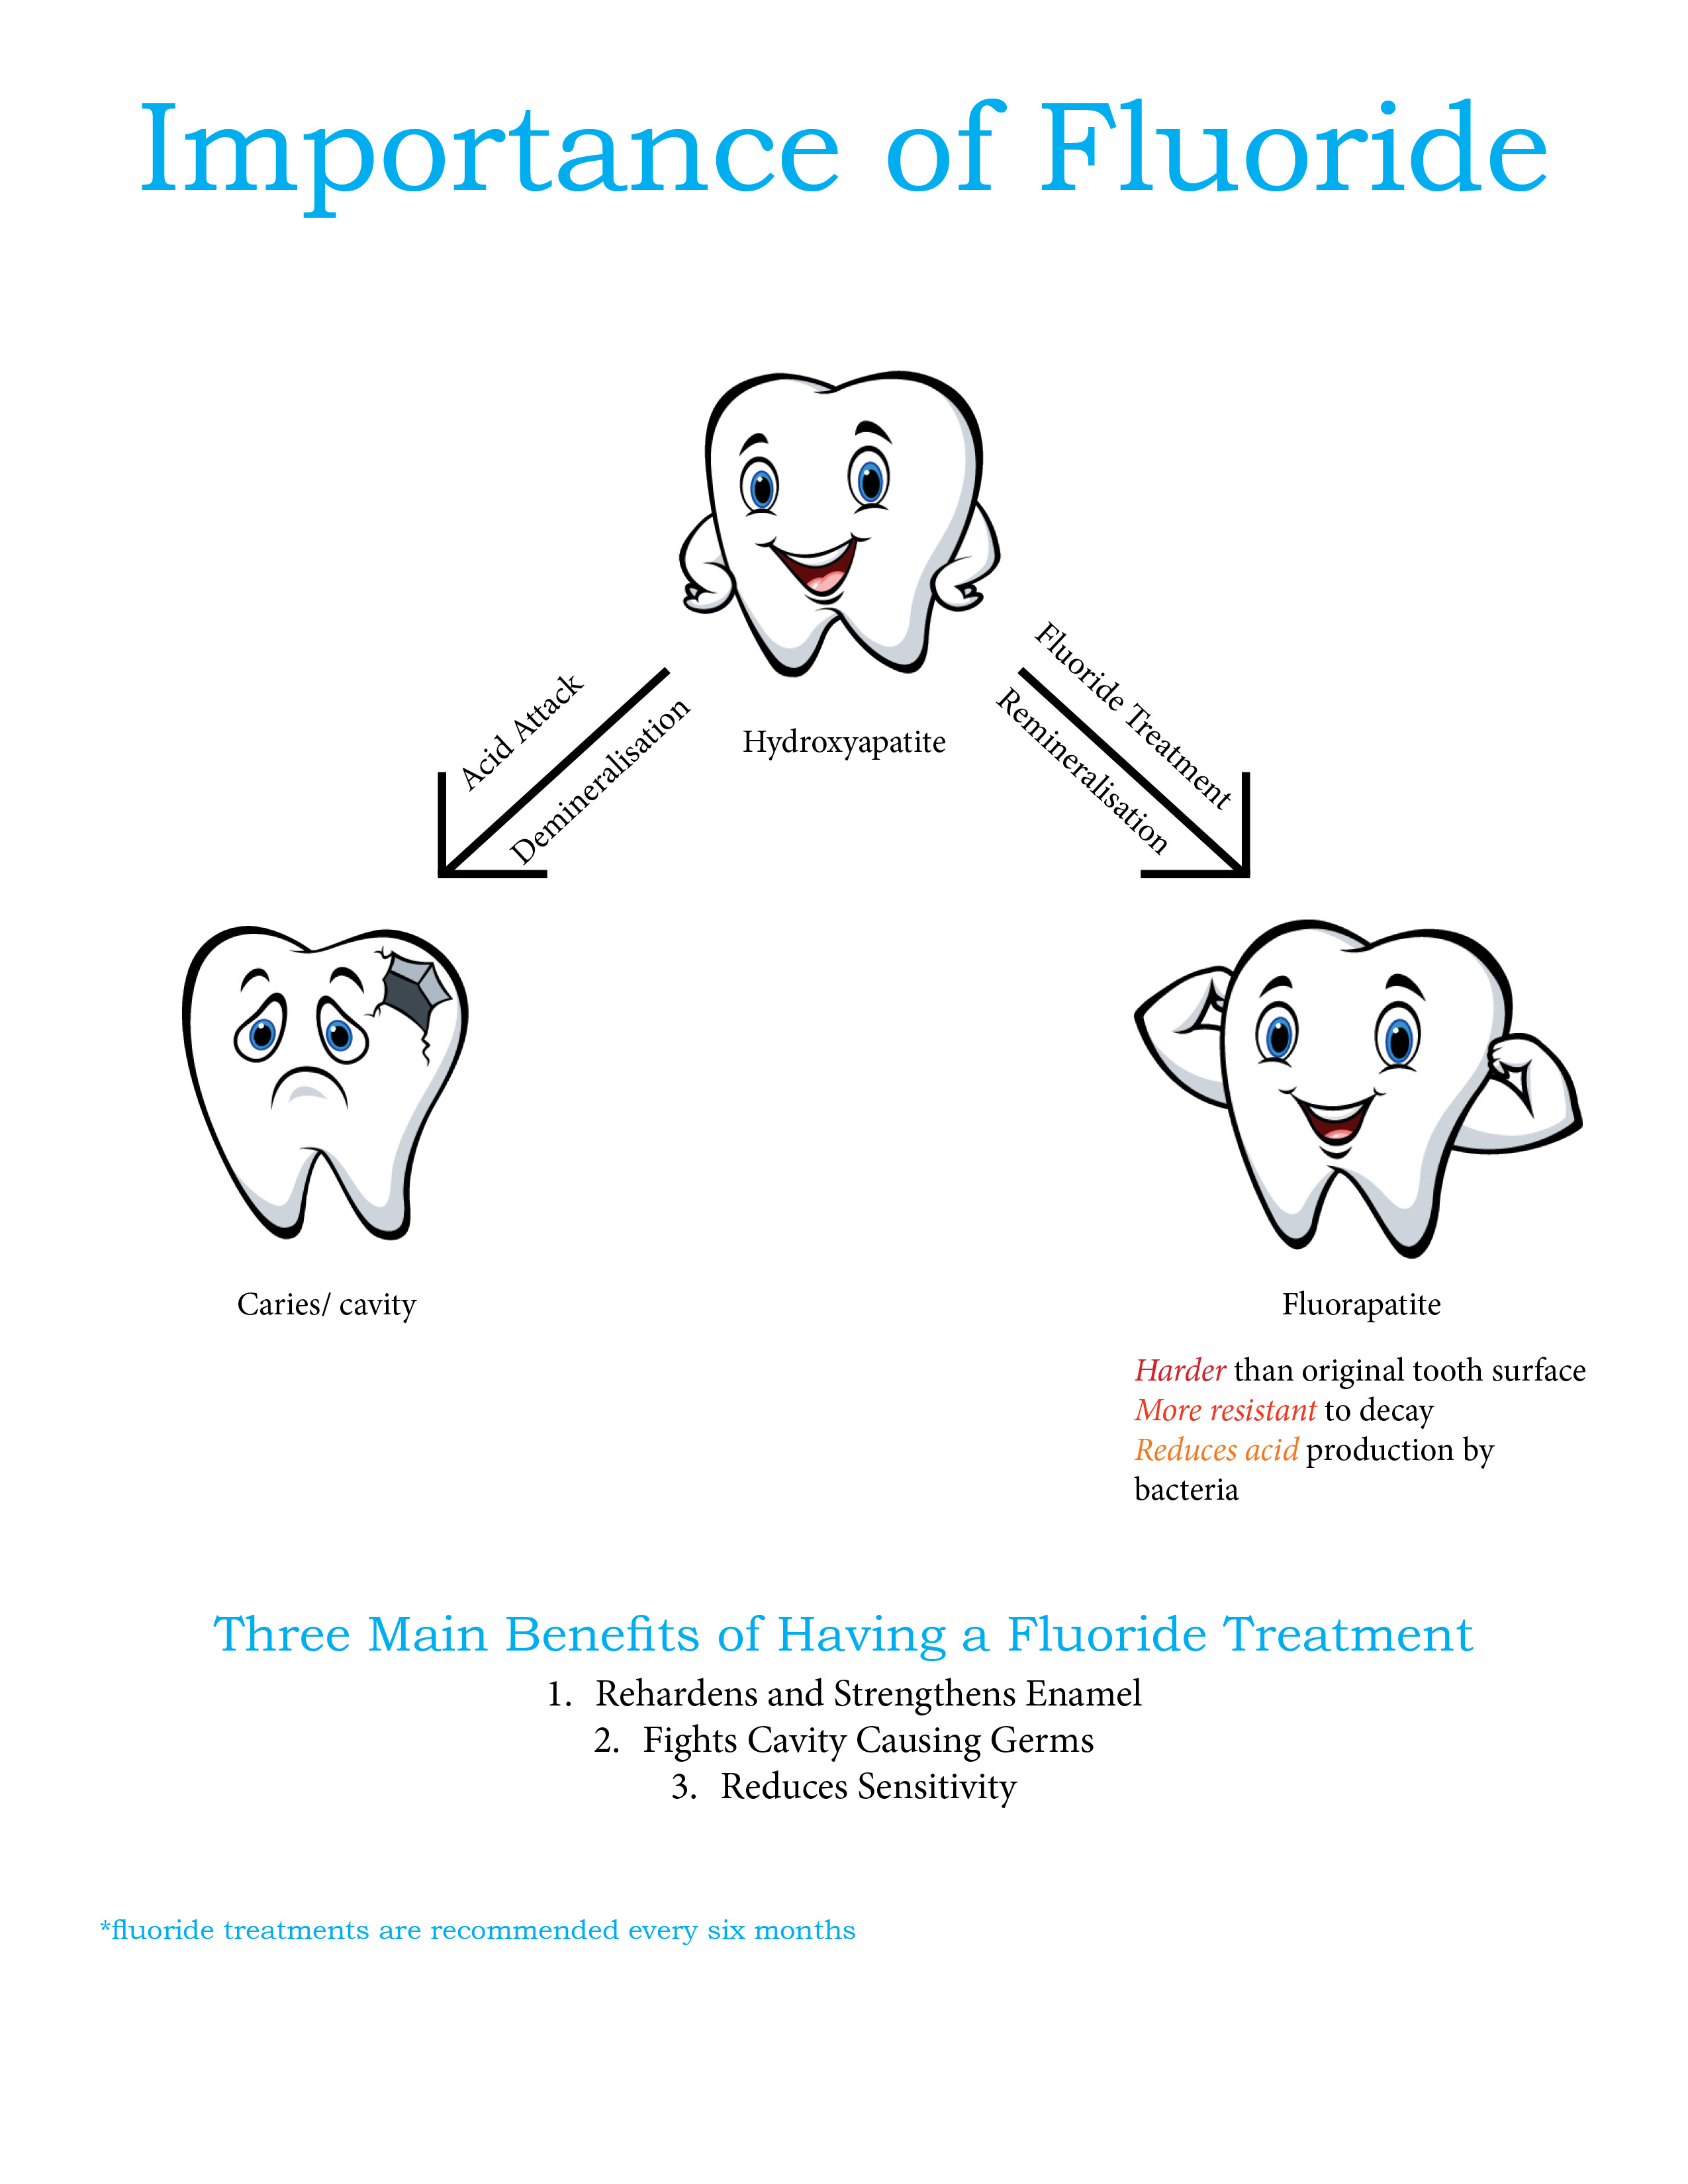 The Importance of Fluoride